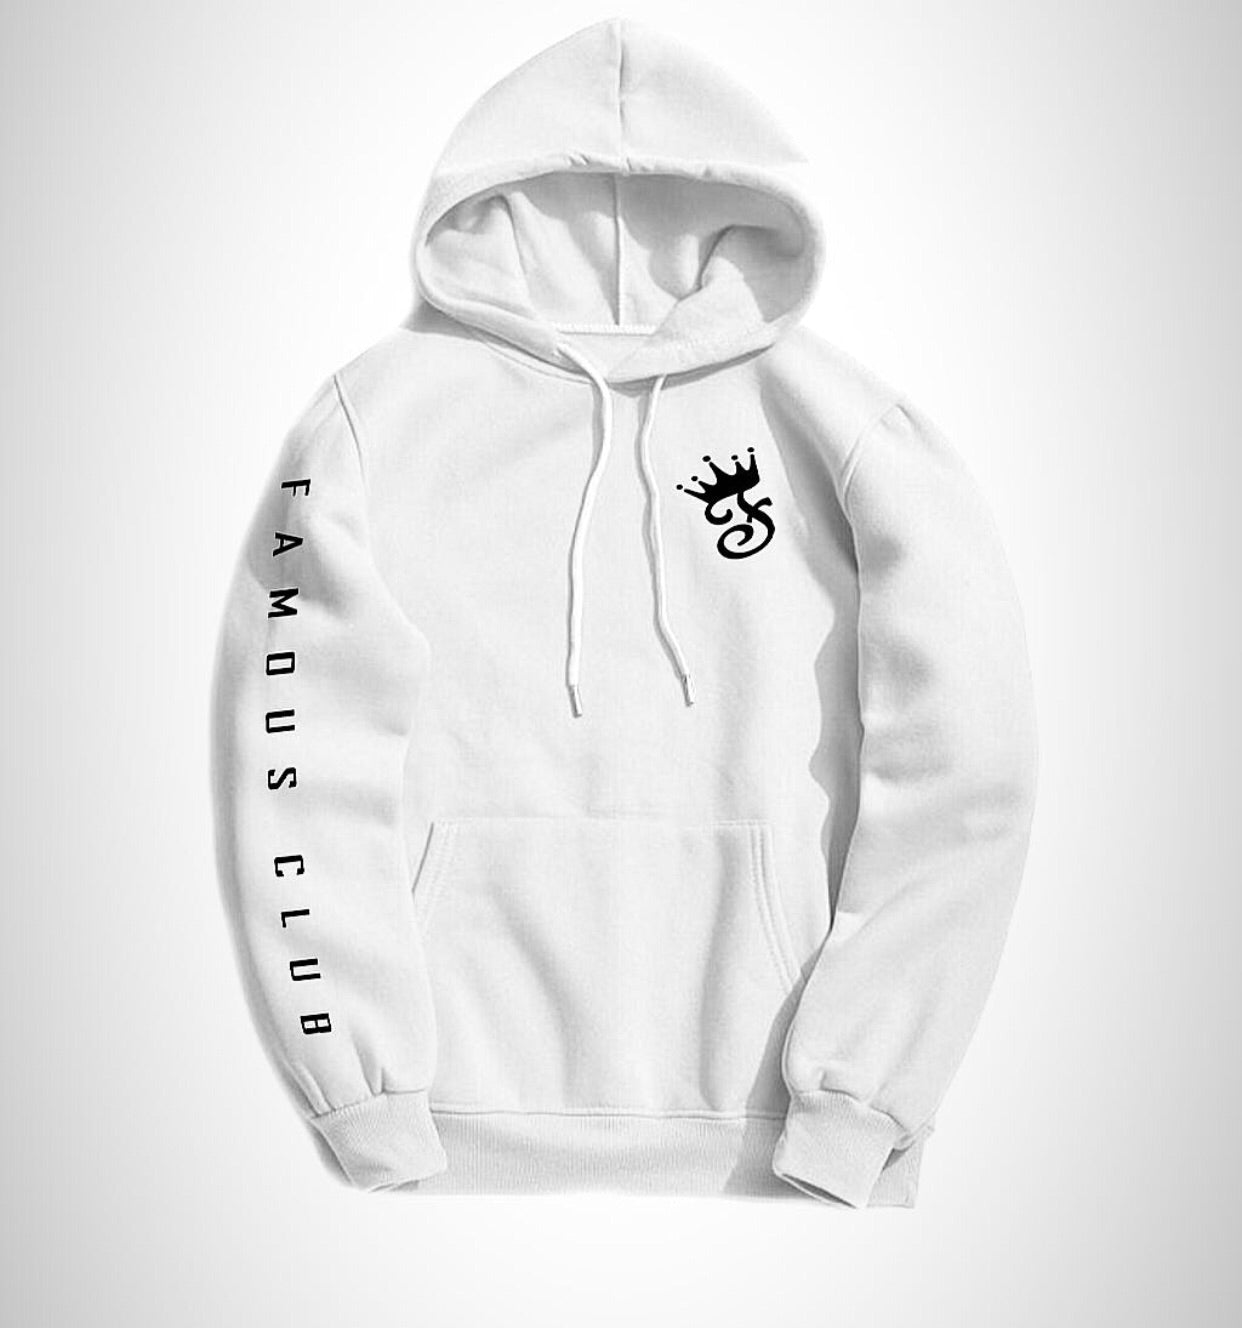 Snow White Fame Hoodie - Famous Club Clothing